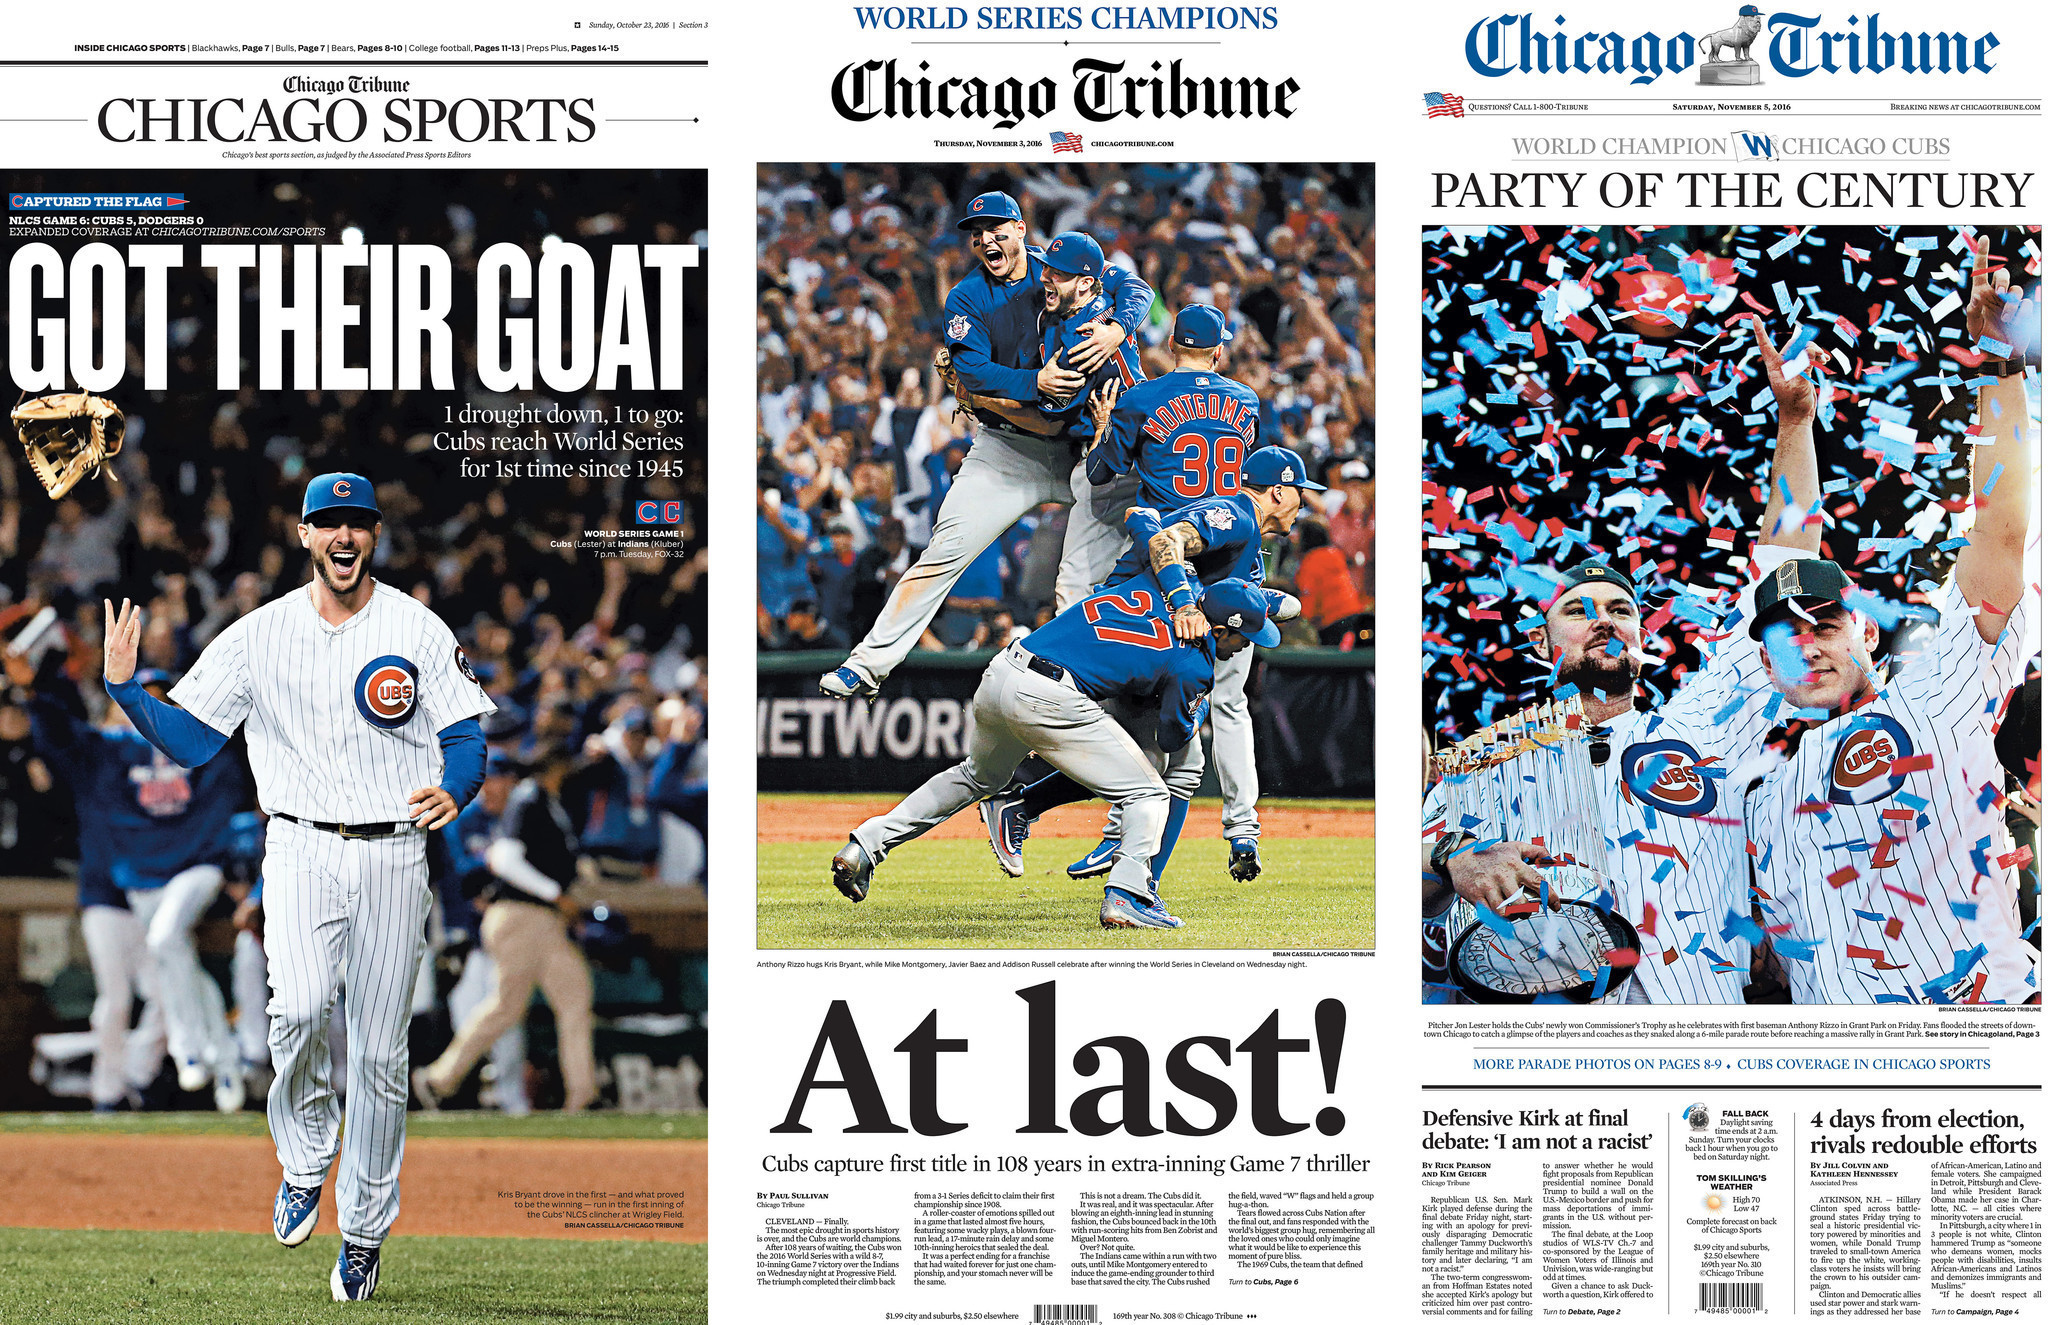 dd97ddfb7 Witnessing Chicago history with the Cubs - Chicago Tribune